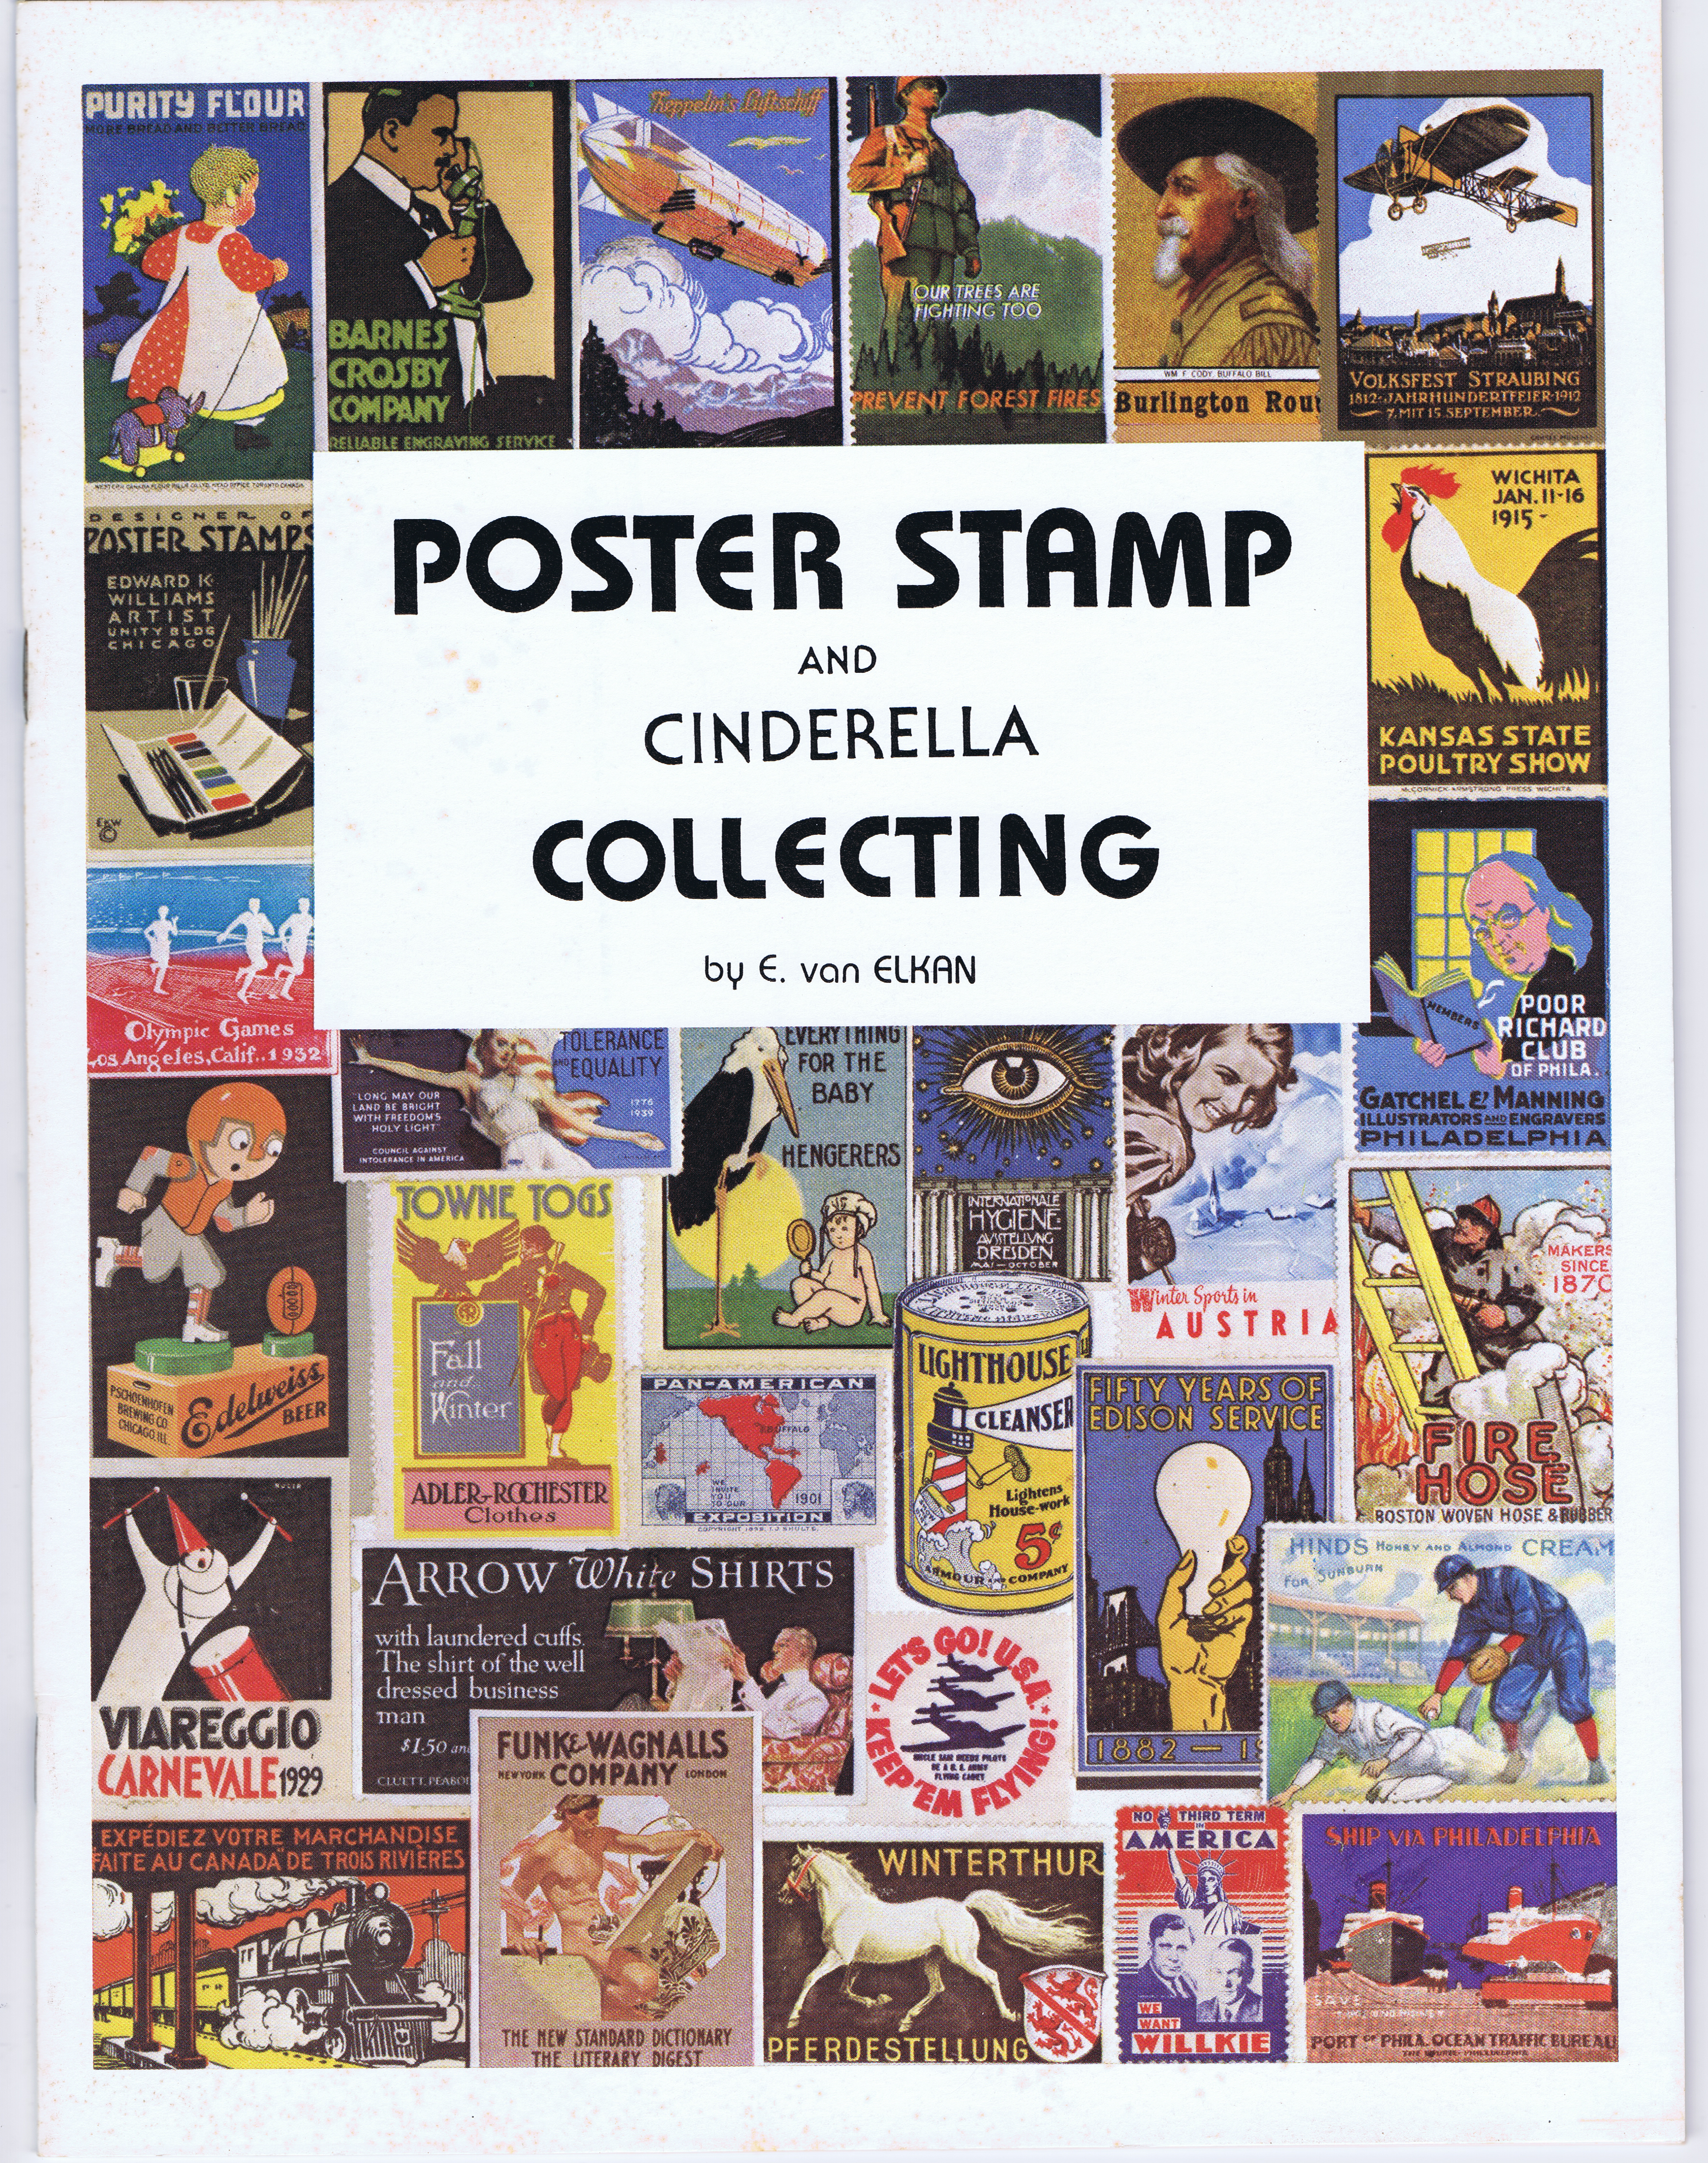 AK0678POSTER STAMP AND CINDERELLA COLLECTING